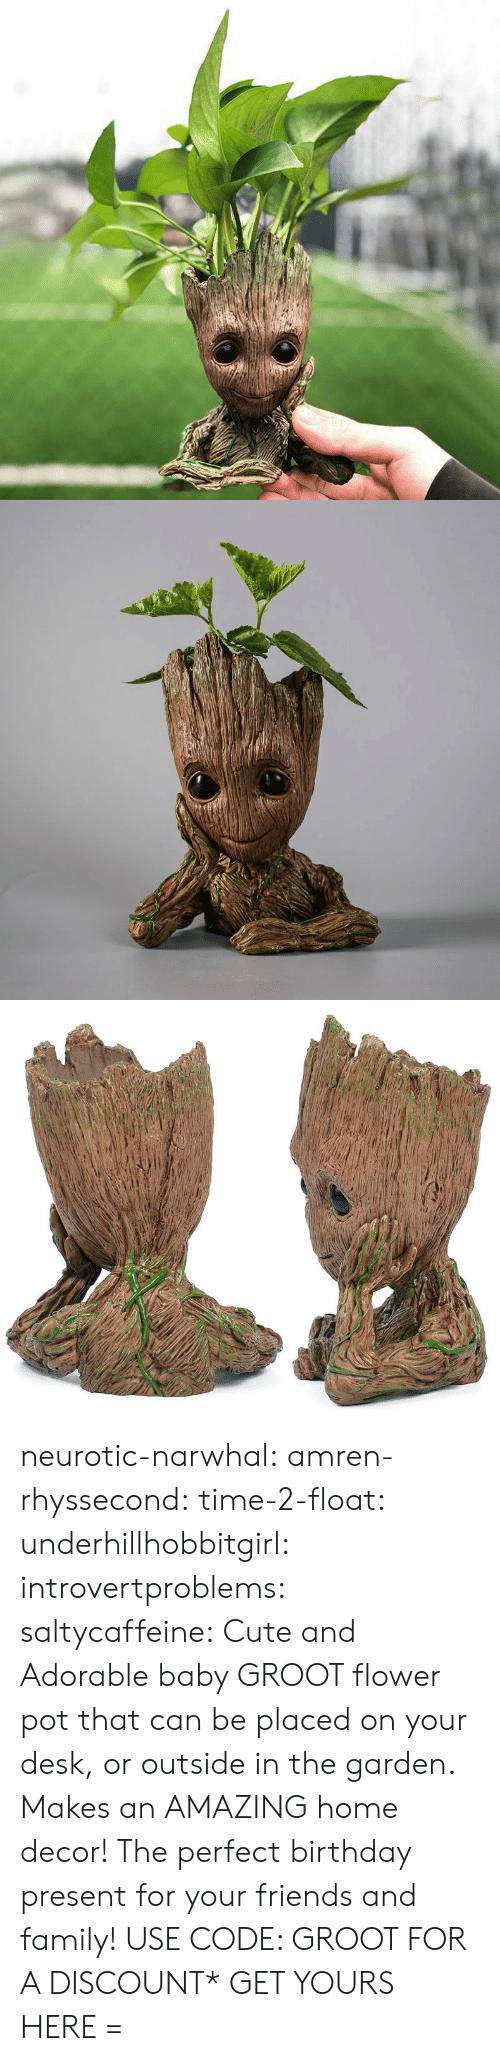 fae: neurotic-narwhal:  amren-rhyssecond: time-2-float:   underhillhobbitgirl:   introvertproblems:   saltycaffeine:  Cute and Adorable baby GROOT flower pot that can be placed on your desk, or outside in the garden. Makes an AMAZING home decor! The perfect birthday present for your friends and family! USE CODE: GROOT FOR A DISCOUNT* GET YOURS HERE=